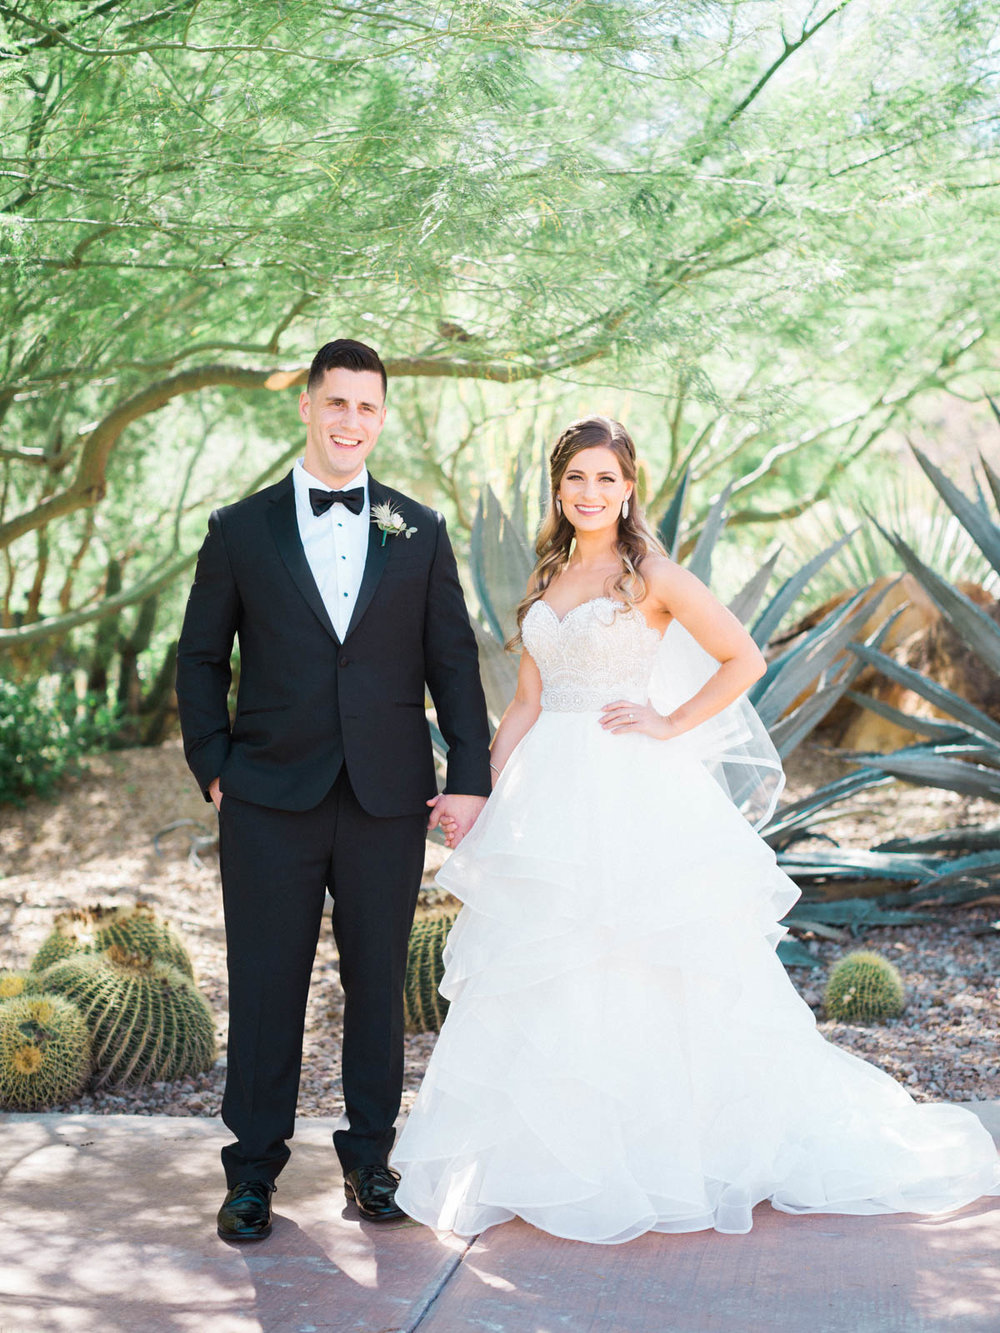 Bride & groom portrait captured by Tucson Wedding Photographers Betsy & John